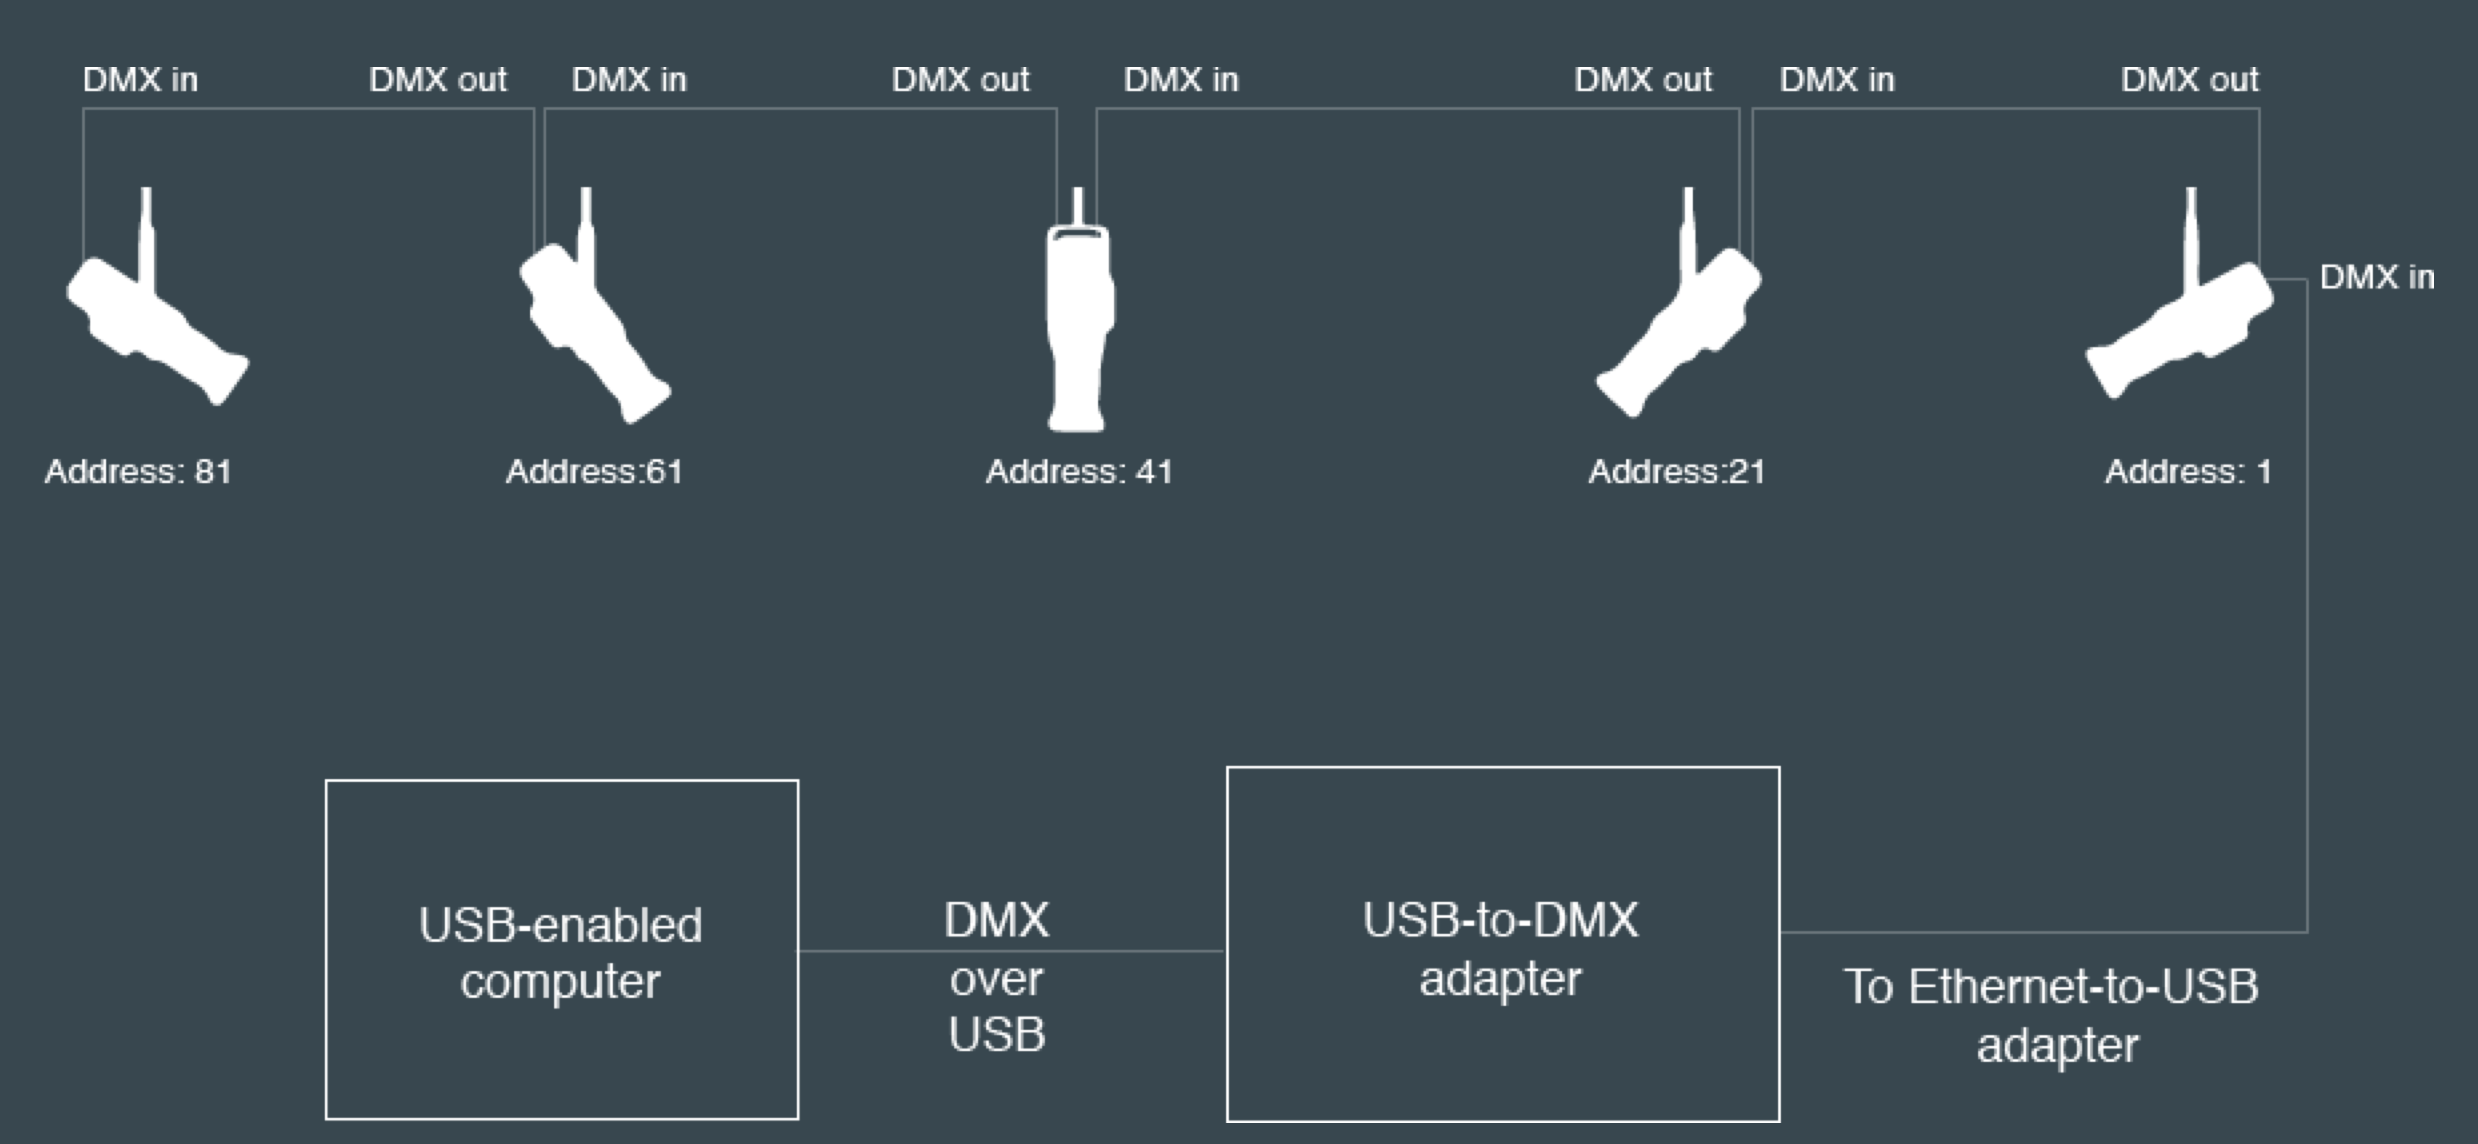 Figure 12. A  DMX universe controlled by a personal computer using a USB-to-DMX adapter.